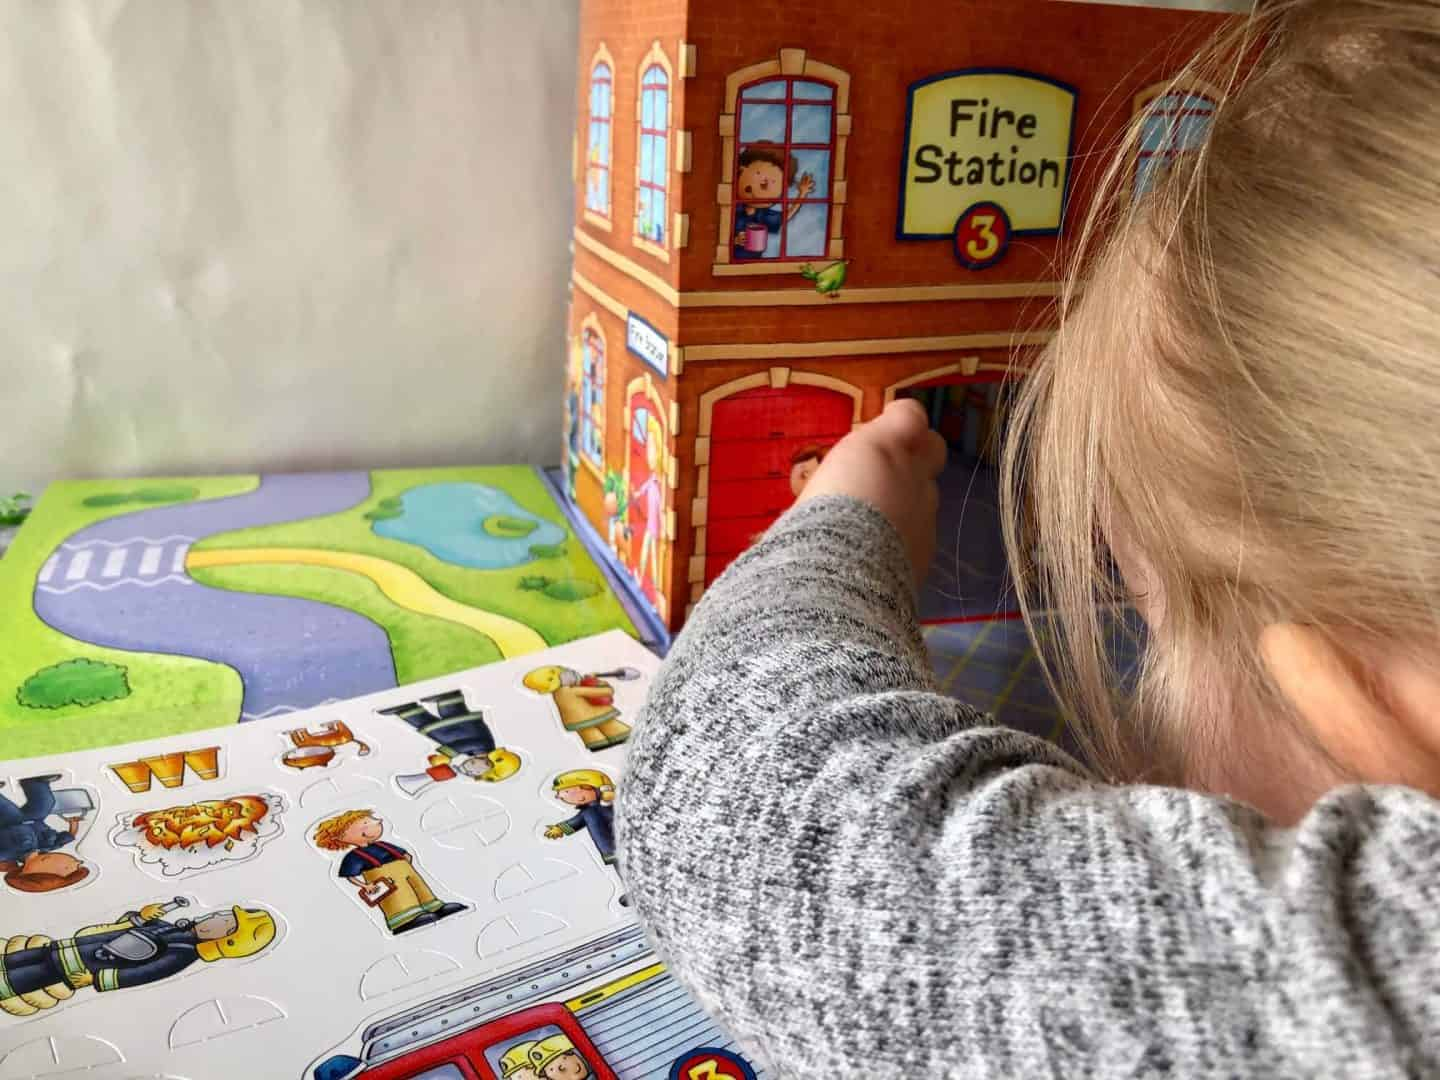 Fire Station Playmat and story book